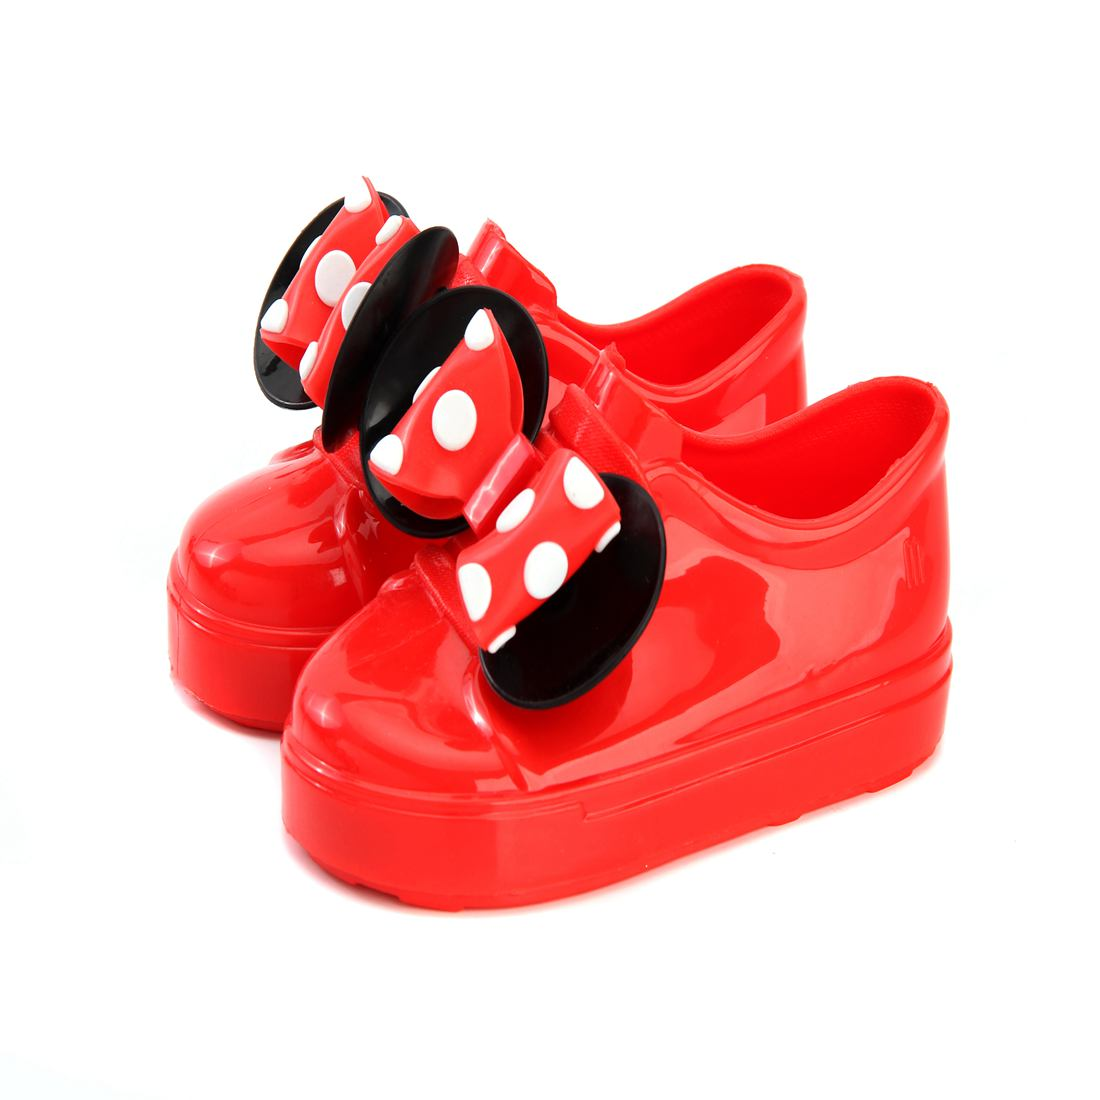 Melissa No Shoelace Twins Mouse Bow Kids Sports Shoes 2018 Tennis Winter Wave Point 2 Layer Bow Flat Slip-on Girl Sandal